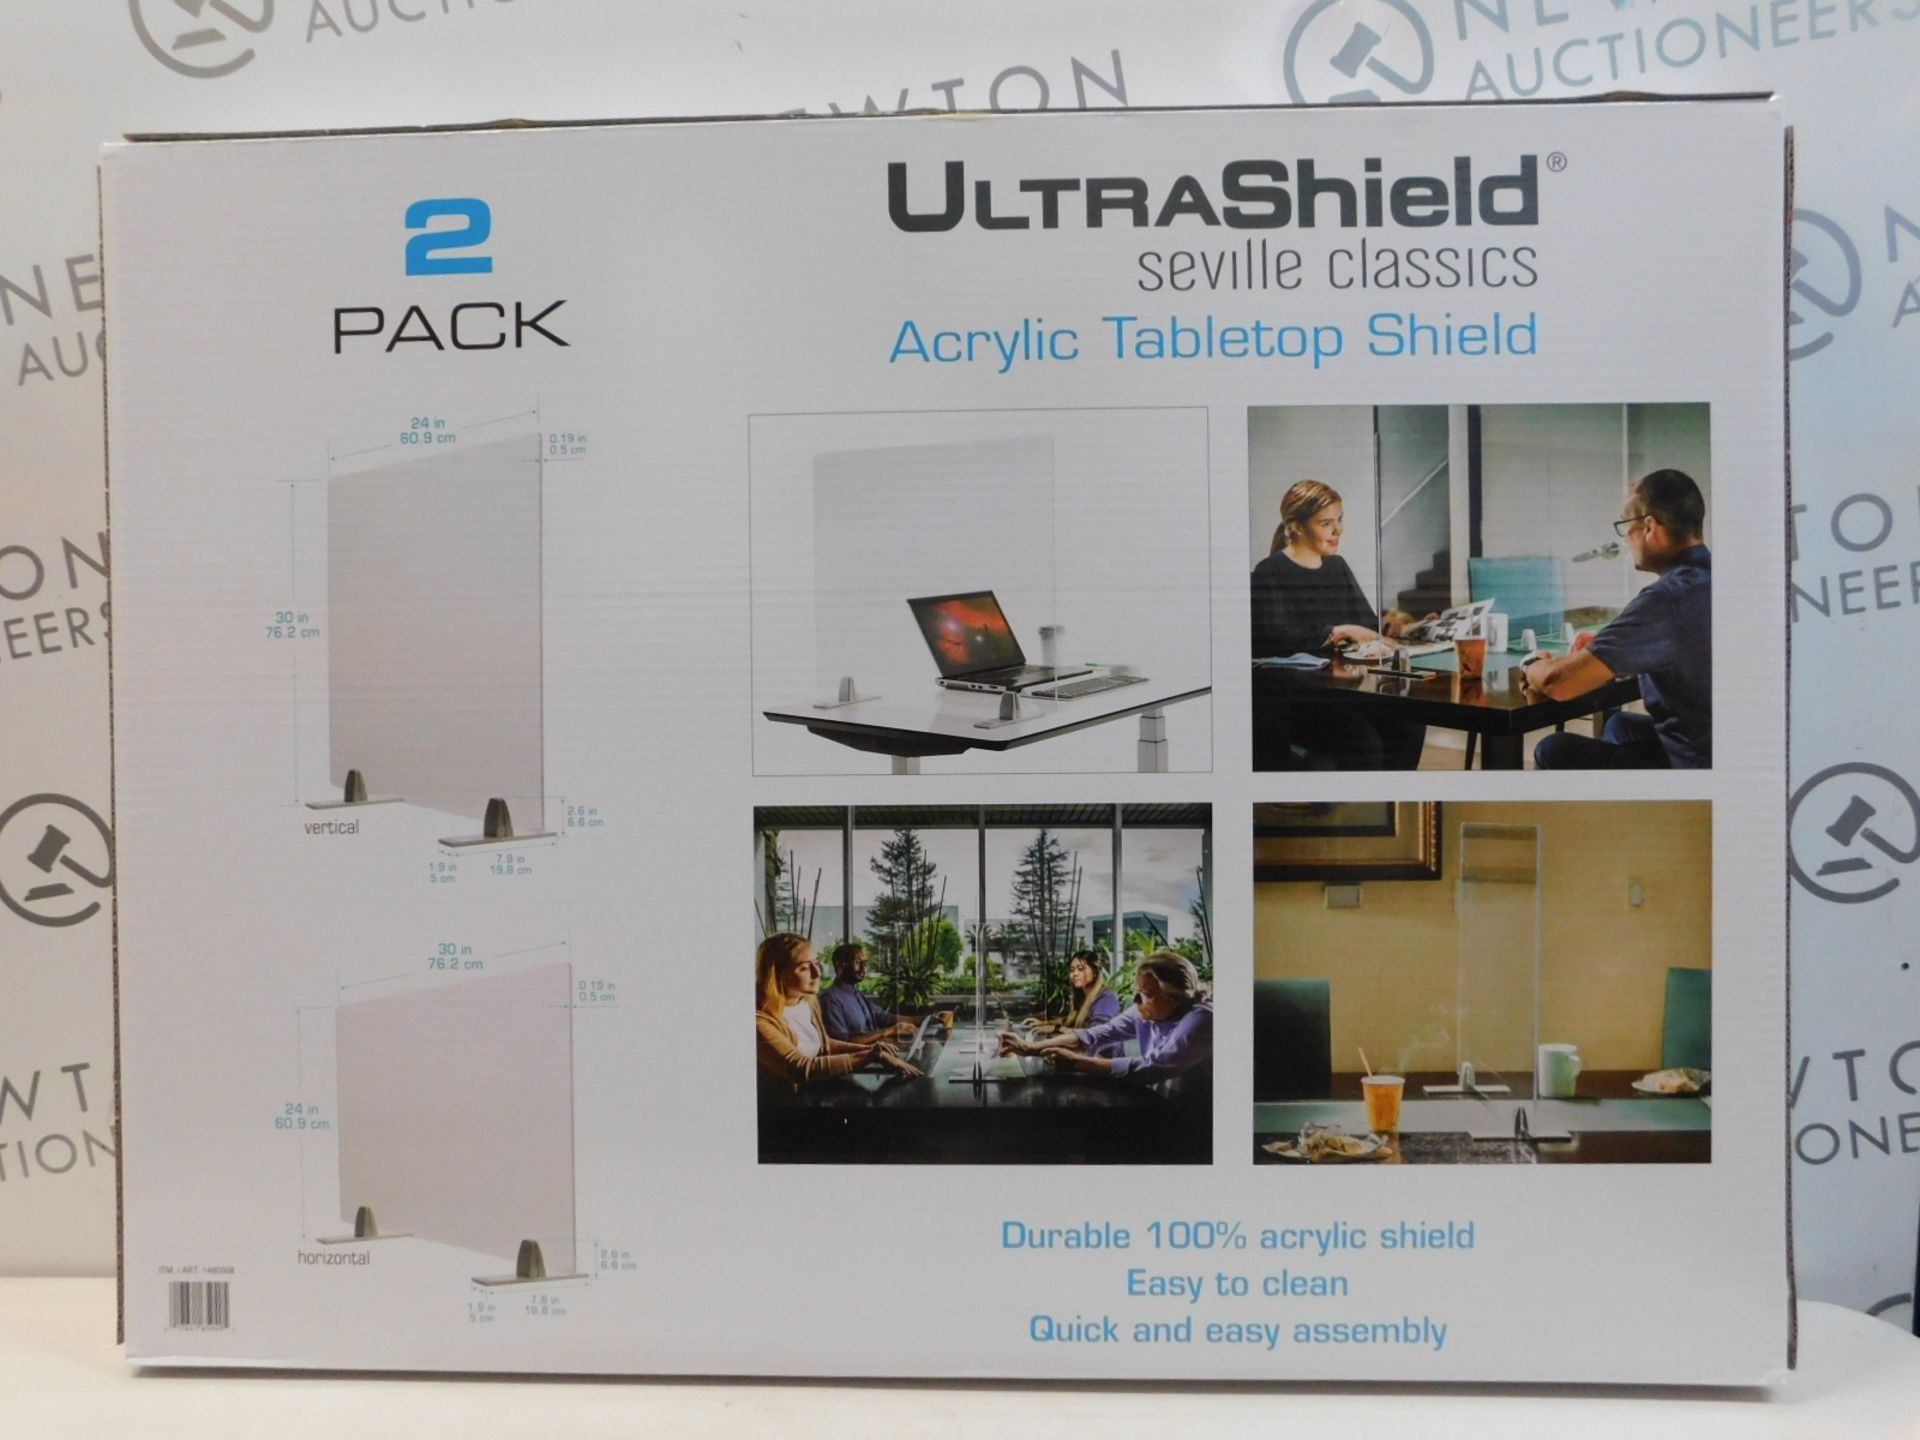 1 BRAND NEW BOXED SEVILLE CLASSICS ULTRASHIELD TABLE TOP SHIELD 2-PACK RRP £79.99